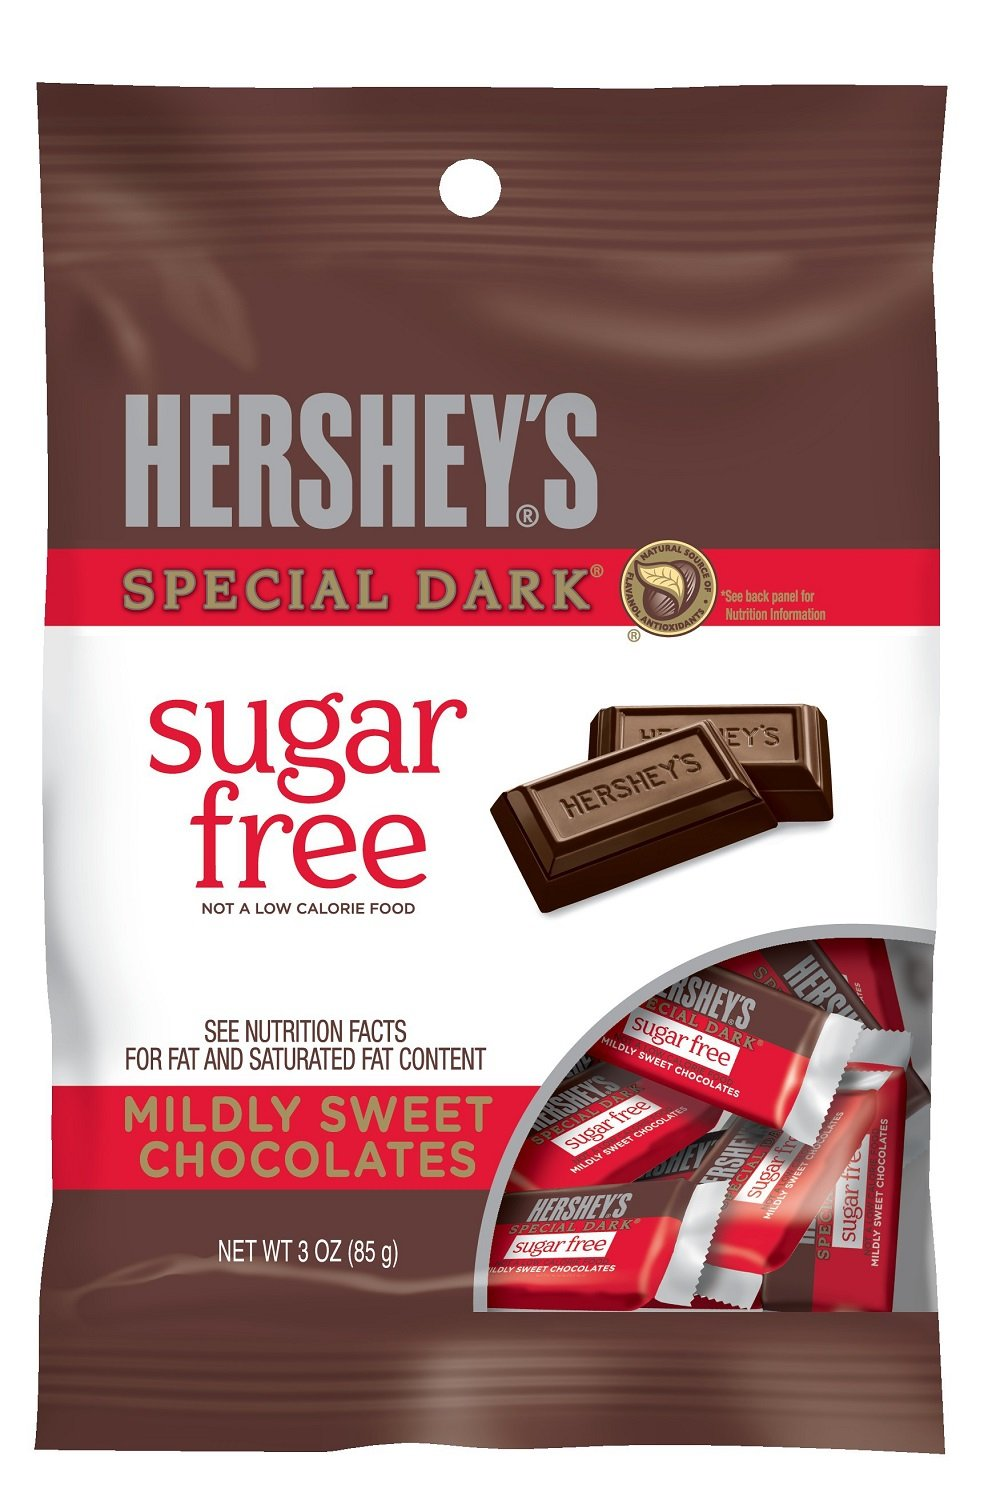 HERSHEY'S SPECIAL DARK Chocolate Bars